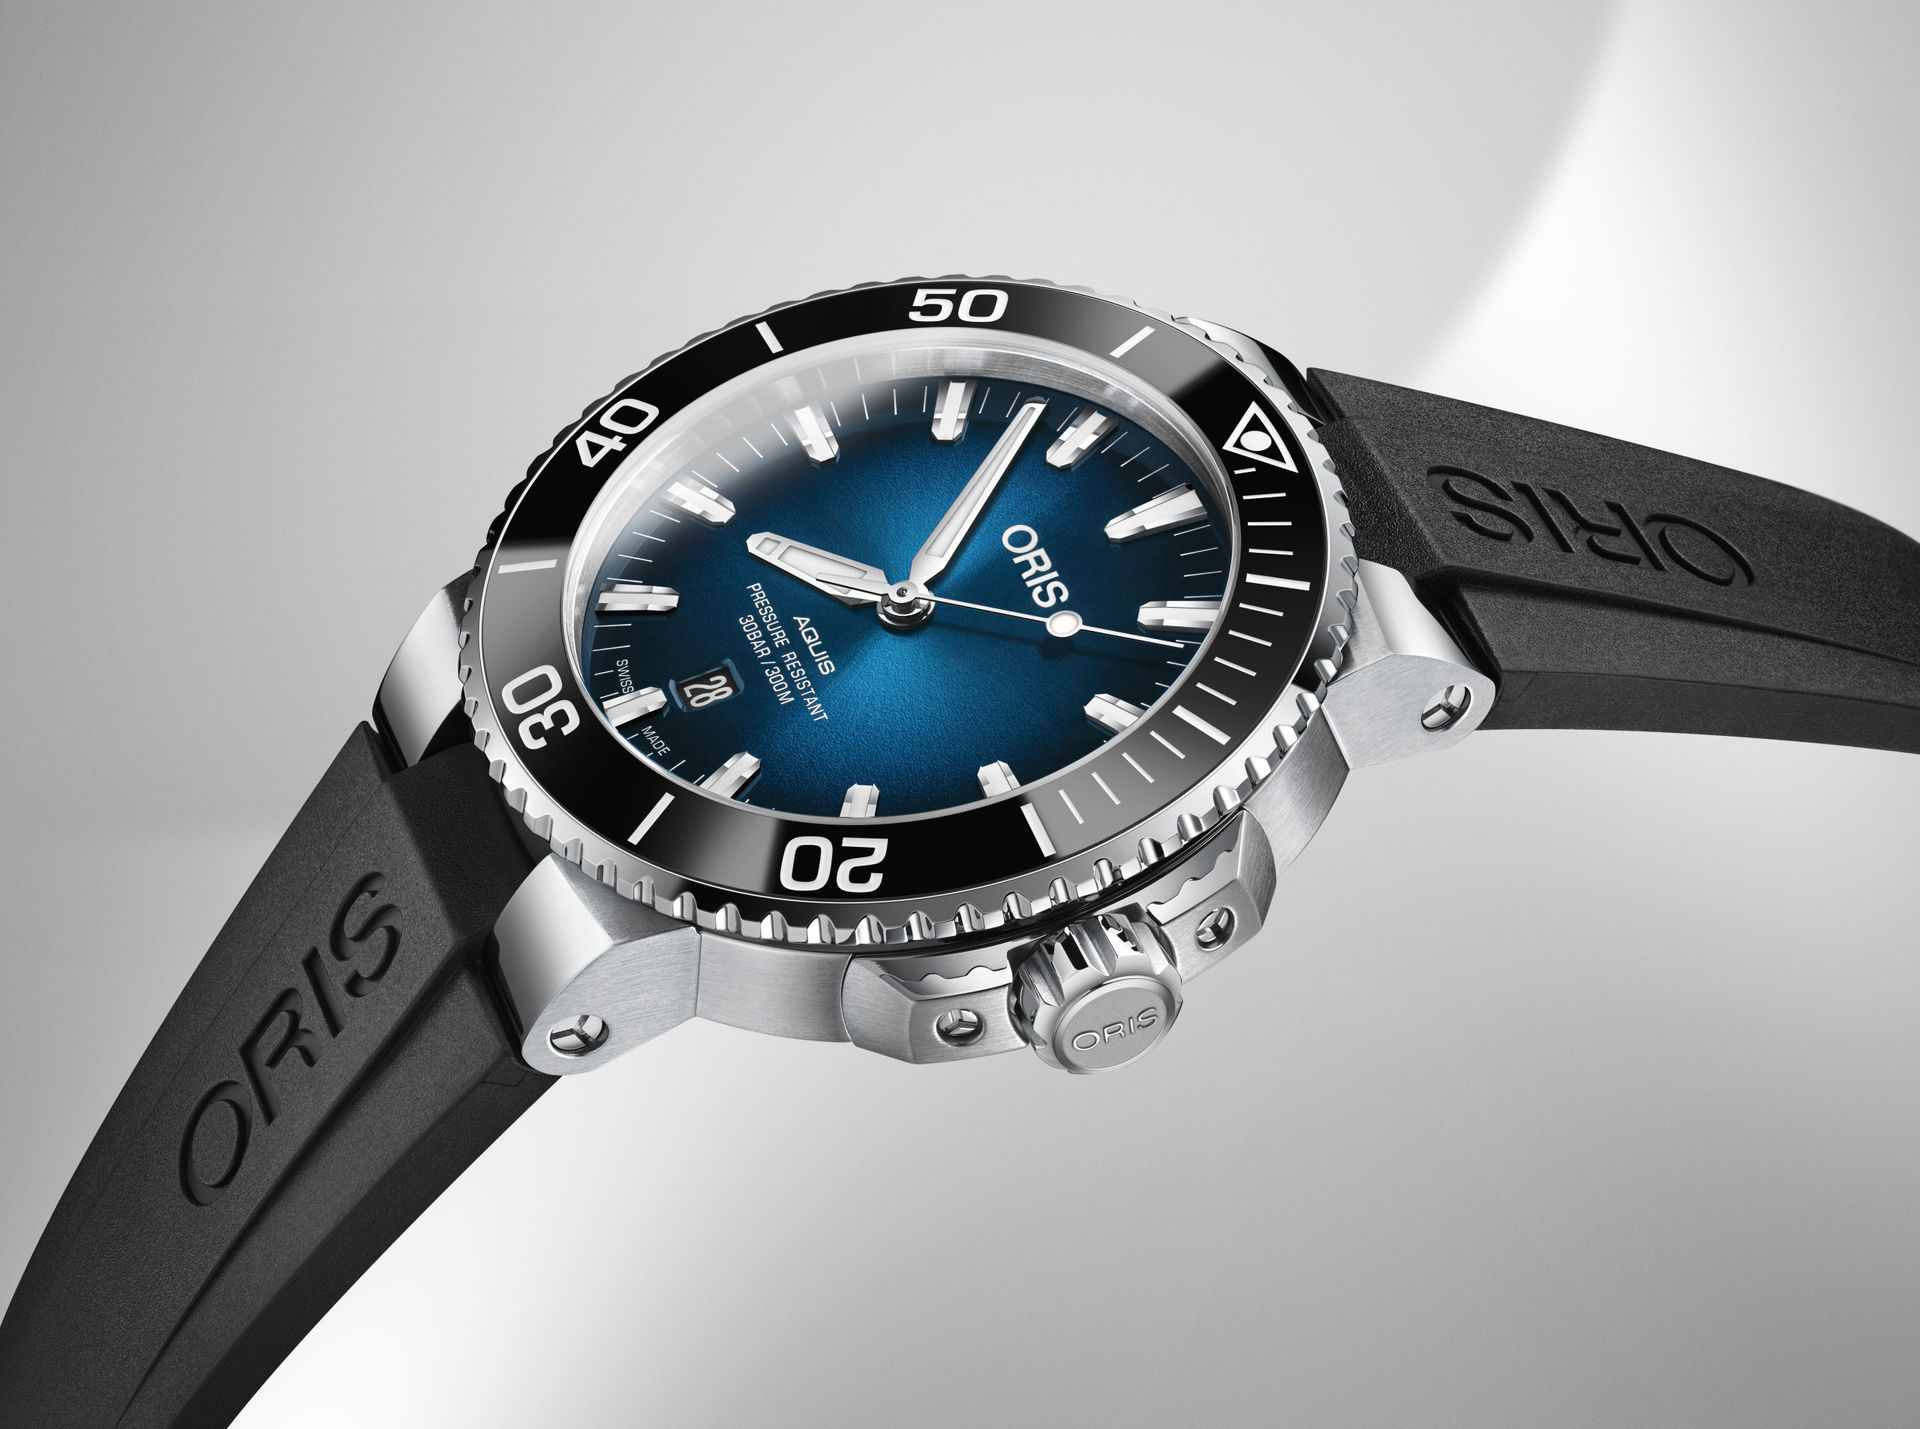 01 733 7730 4185-Set RS - Oris Clipperton Limited Edition